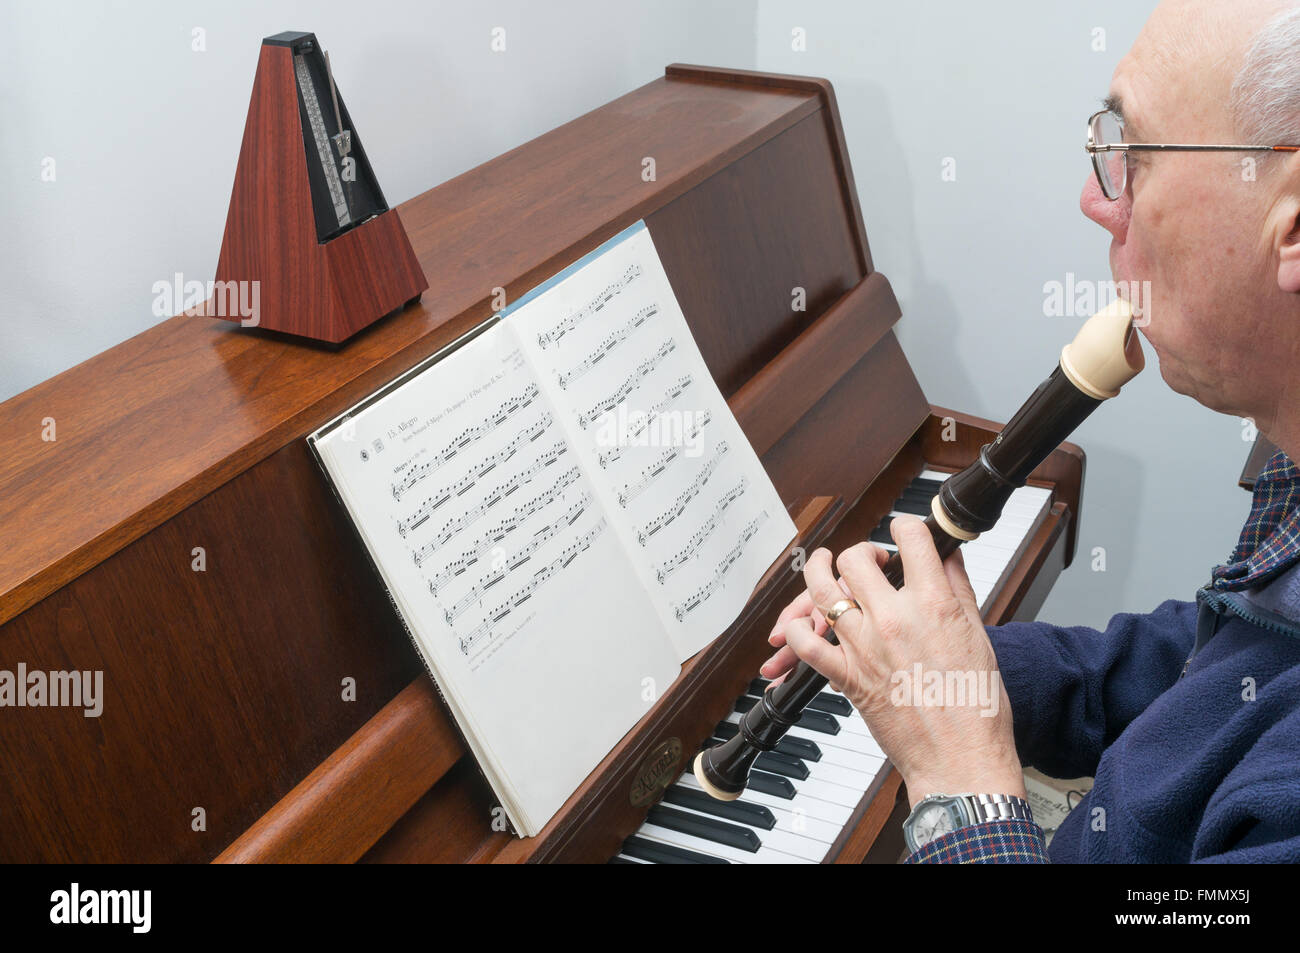 Older man playing an alto or treble recorder with a metronome to set the tempo. - Stock Image